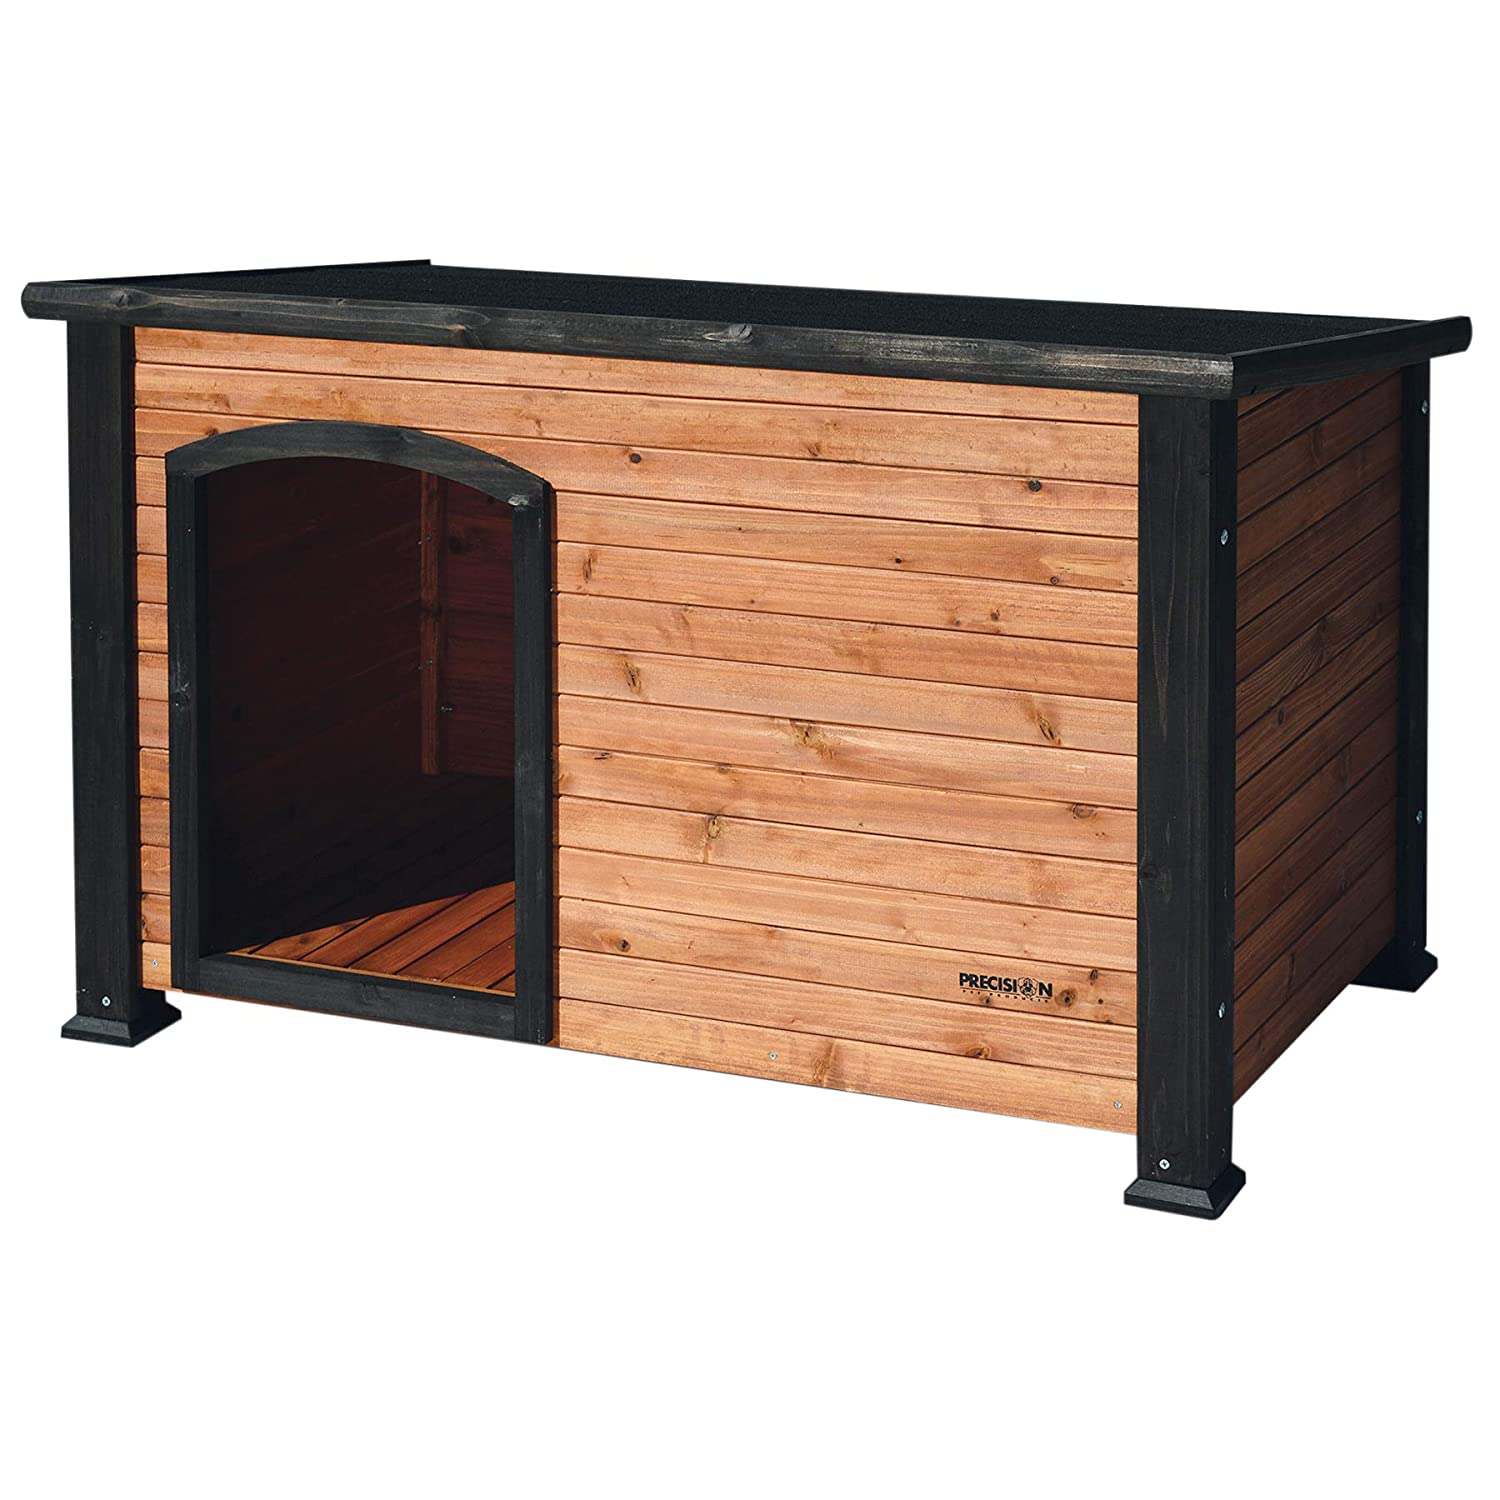 Precision Pet by Petmate Extreme Weather-Resistant Log Cabin Dog House with Adjustable Feet